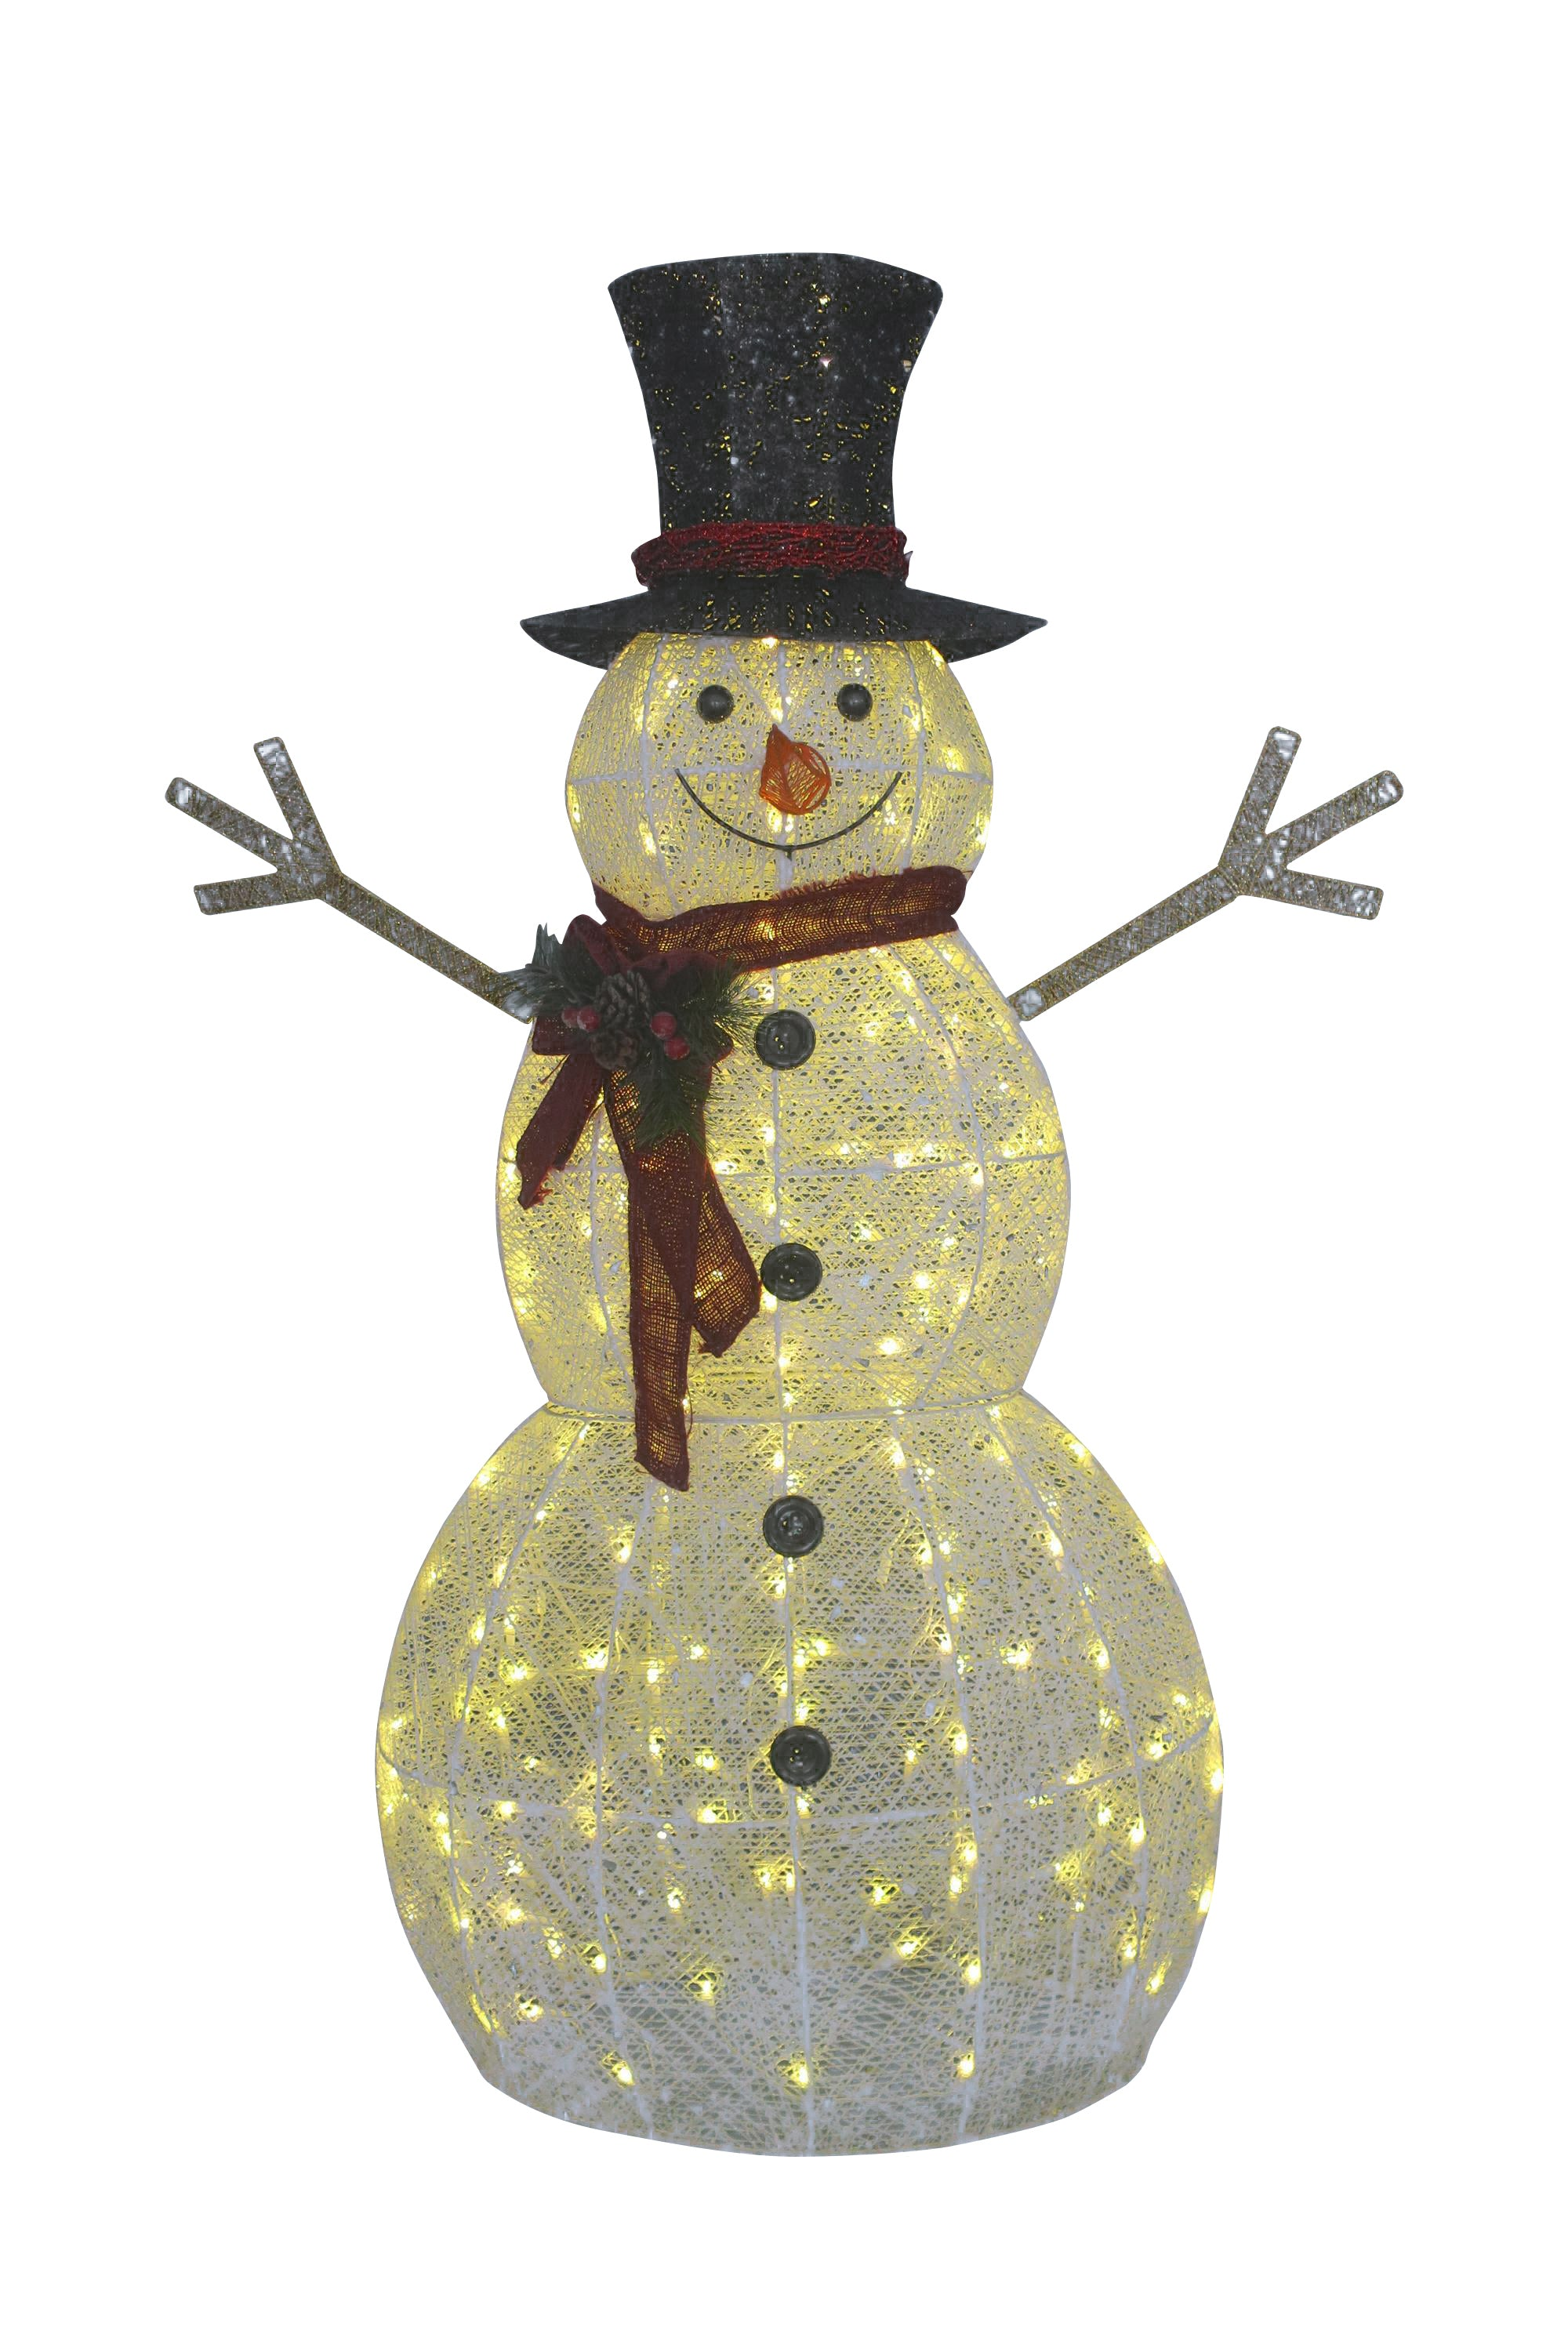 5' Sparkling Snowman Outdoor Decoration with 200 Cool White LED Lights